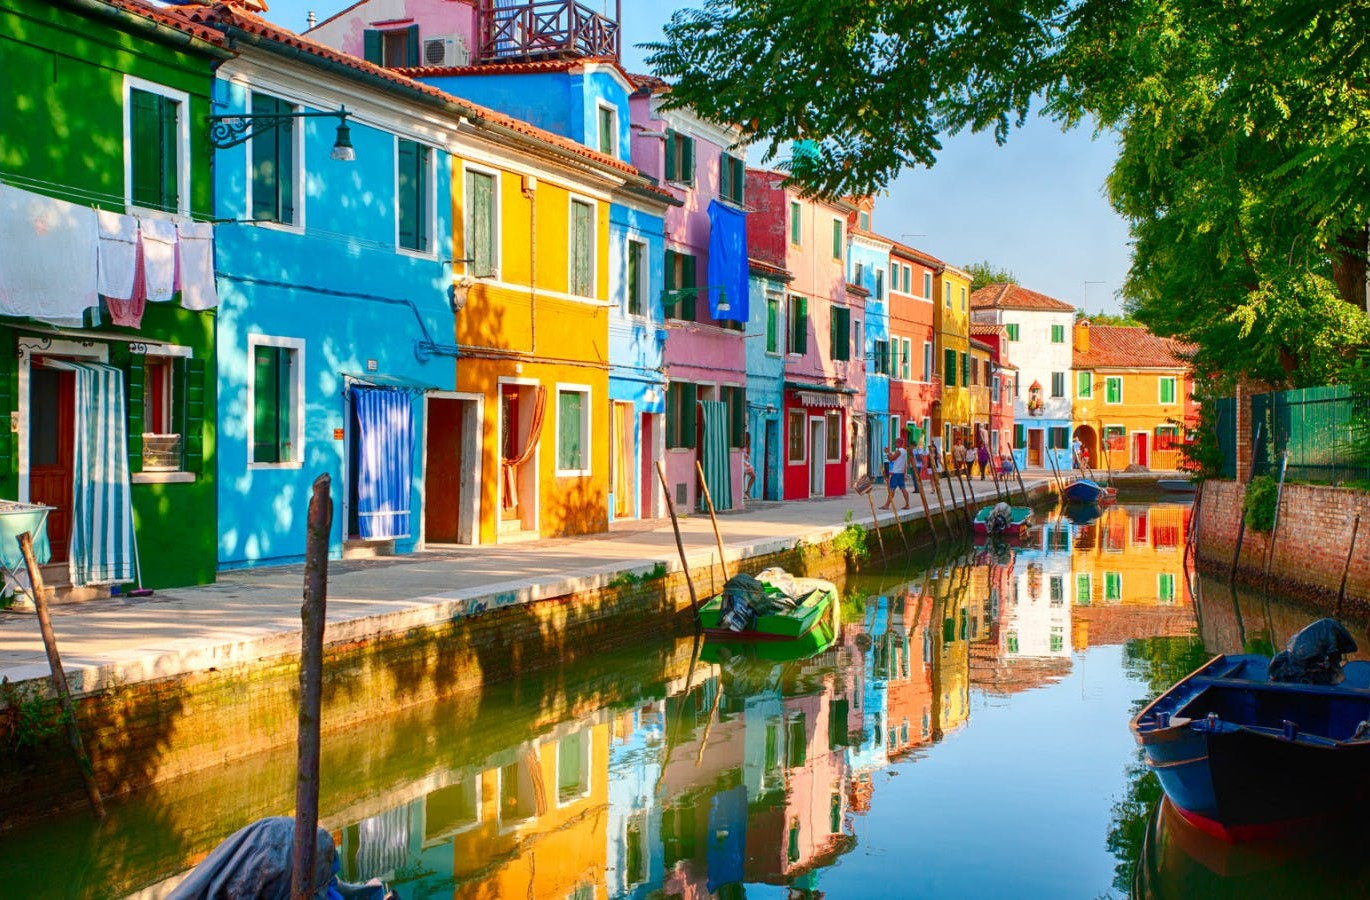 Islands Tour - Murano - Burano - Torcello